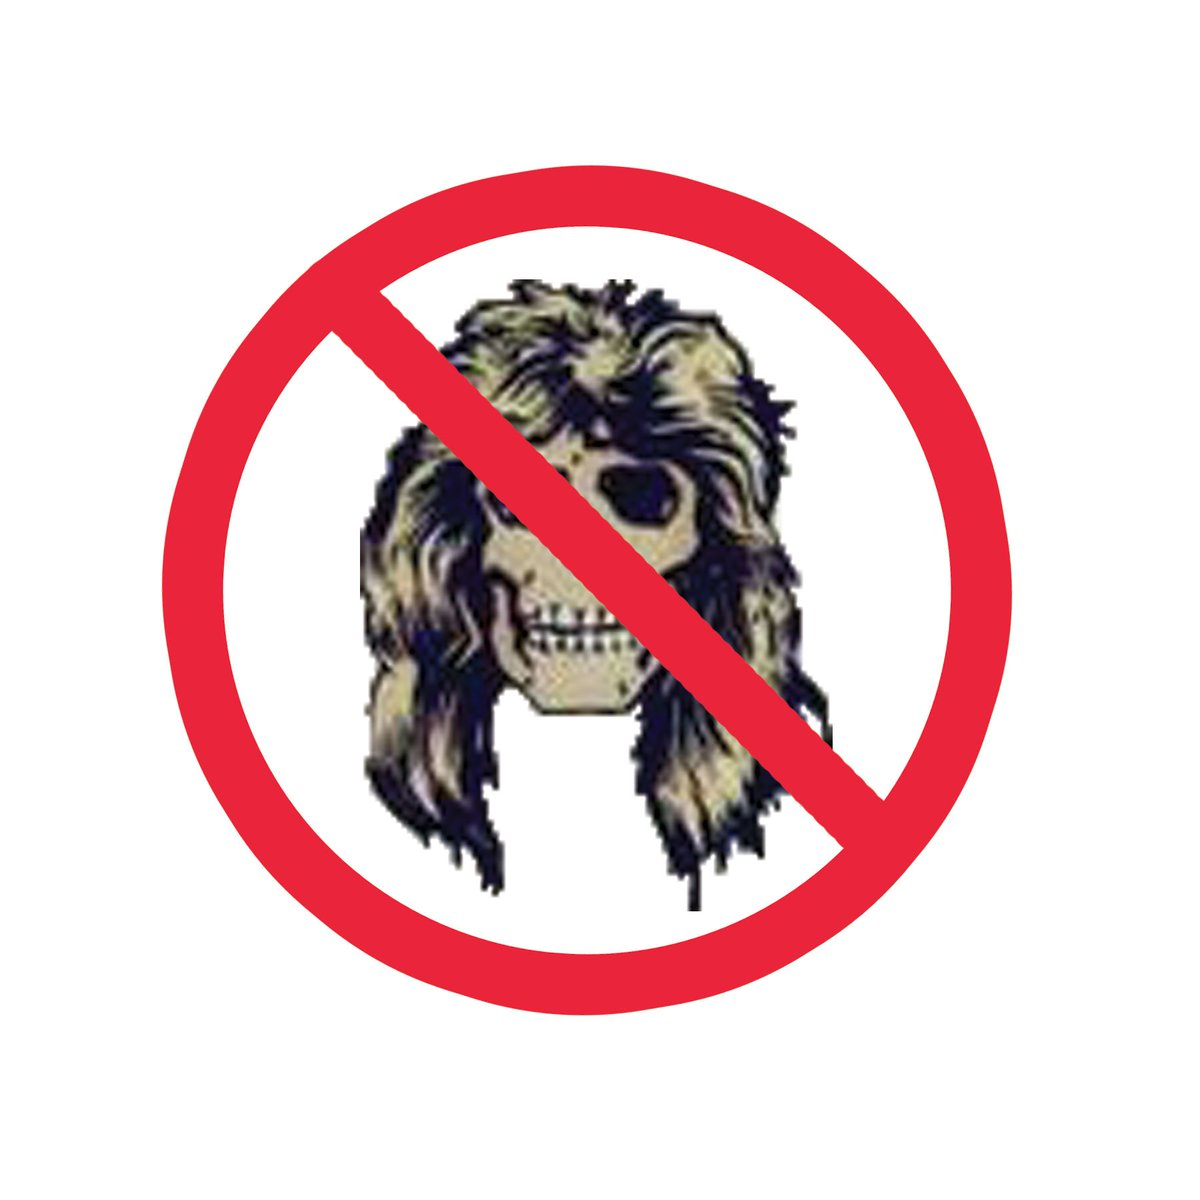 The Steven Adler show on 4/1 has been canceled.  Stay tuned for a big announcement ! #GunsNRoses https://t.co/DonxgJmdin